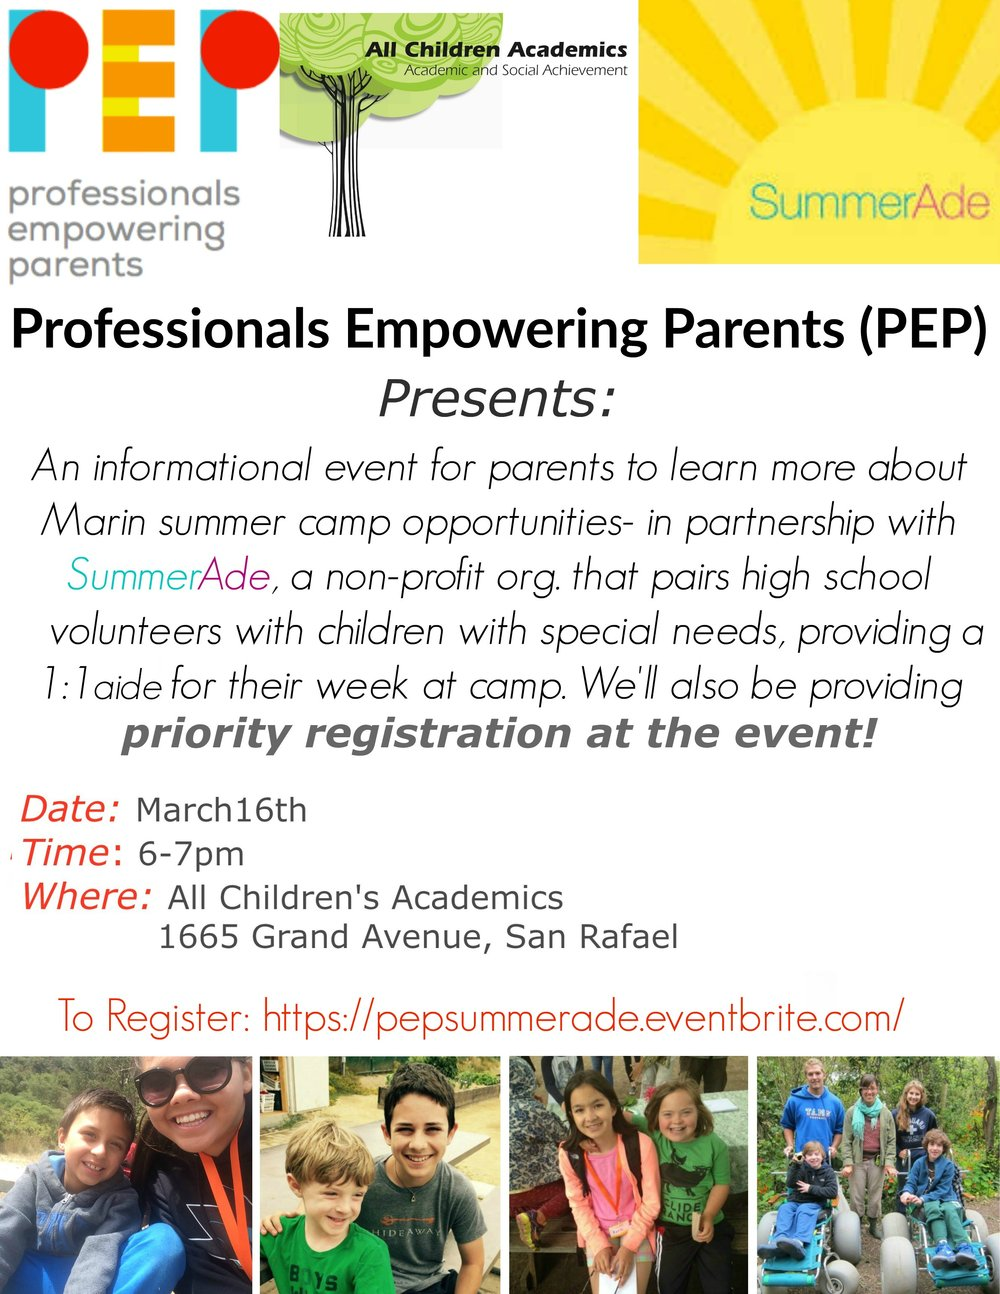 Professionals Empowering Parents (PEP) and All Children Academics bring you an informational event for parents to learn more about Marin summer camp opportunities- in partnership with SummerAde, a nonprofit organization that pairs trained high school volunteers with children with special needs, providing a 1:1 aide during their camp experience. Jordana Perman, Director of Community Outreach and Strategy of SummerAde, will be speaking about the program. We will also hear from a prior Summerade teen mentor about their experiences working 1:1 to support students at camp.     Priority registration will be available to all who attend!    Learn more about Summerade and the Marin summer camps they work with:  http://summerade.org/